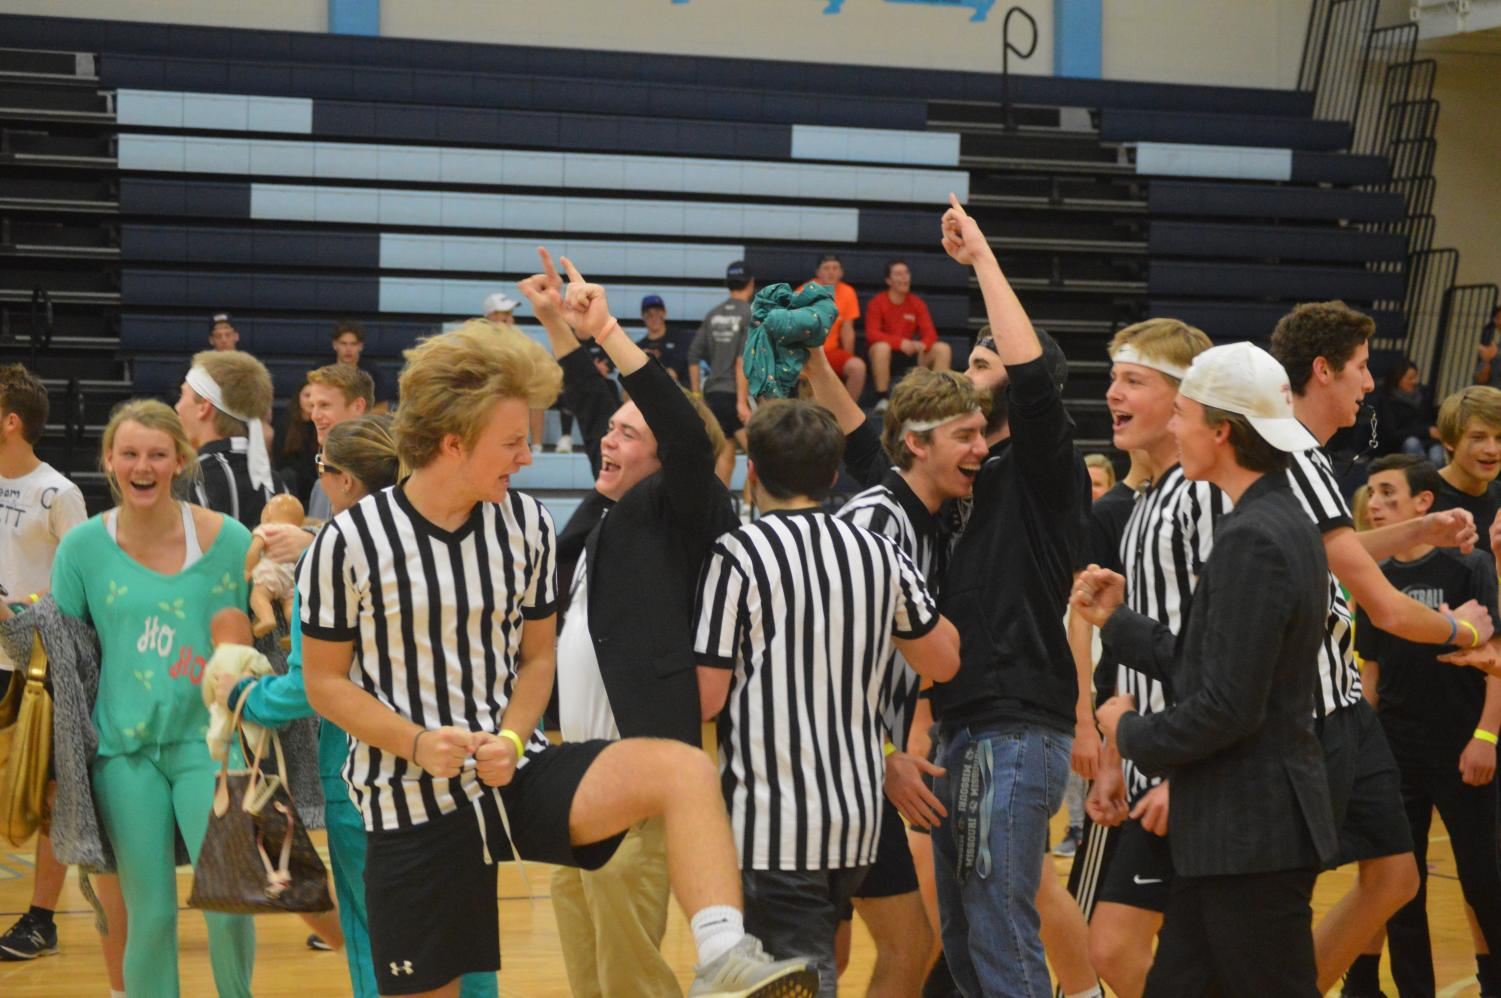 Celebrating the dodgeball victory, the Zebras coach, senior Nick Boland raises two fists in the air. The Zebras later went on to win the whole tournament.